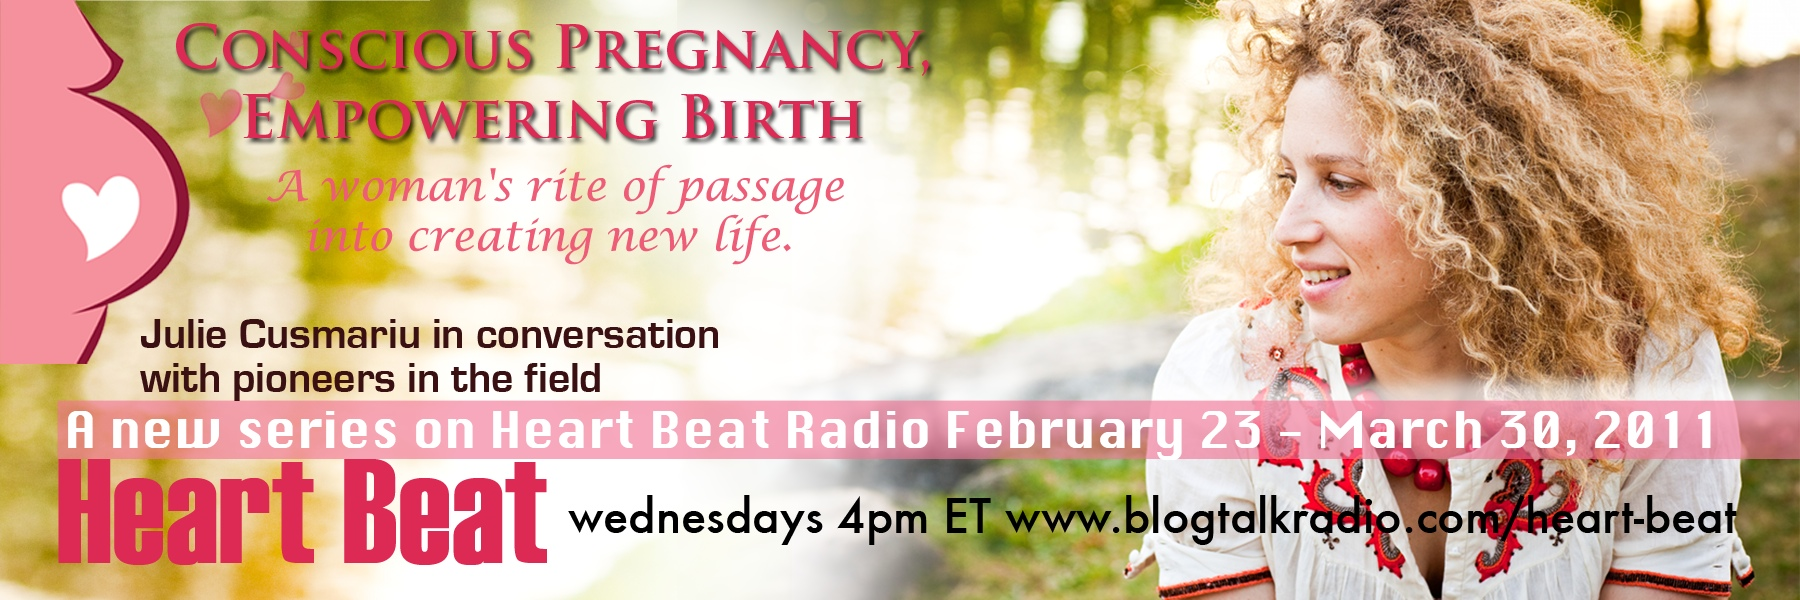 conscious pregnancy empowering birth